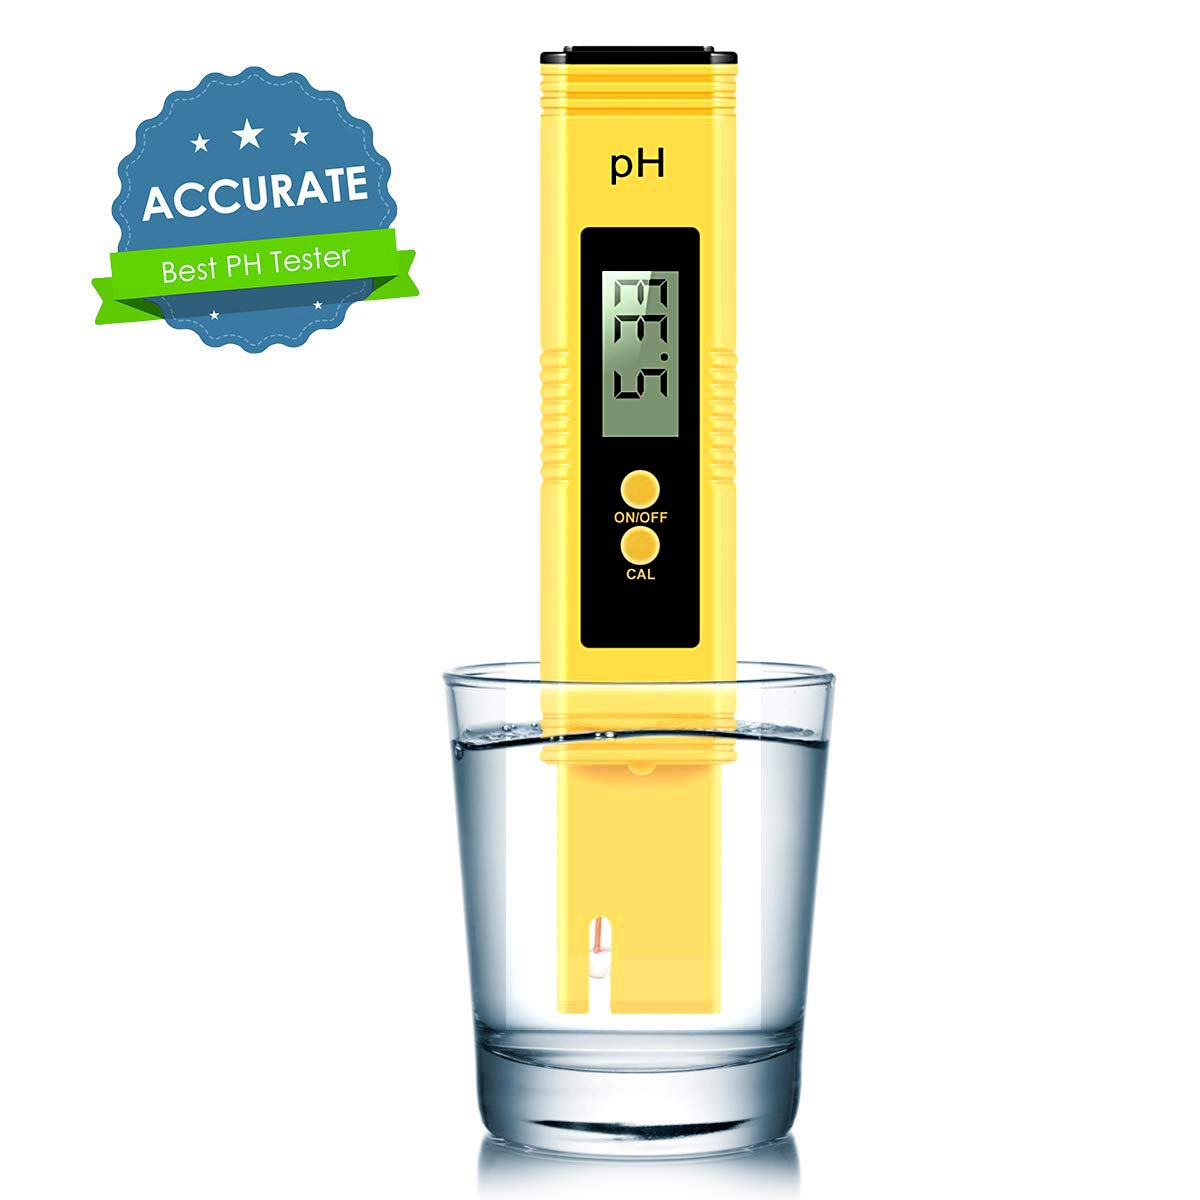 Vminno Digital PH Meter, PH Meter 0.01 PH High Accuracy Water Quality Tester with 0-14 PH Measurement Range for Household Drinking, Pool and Aquarium Water PH Tester Design with ATC ... (2019)